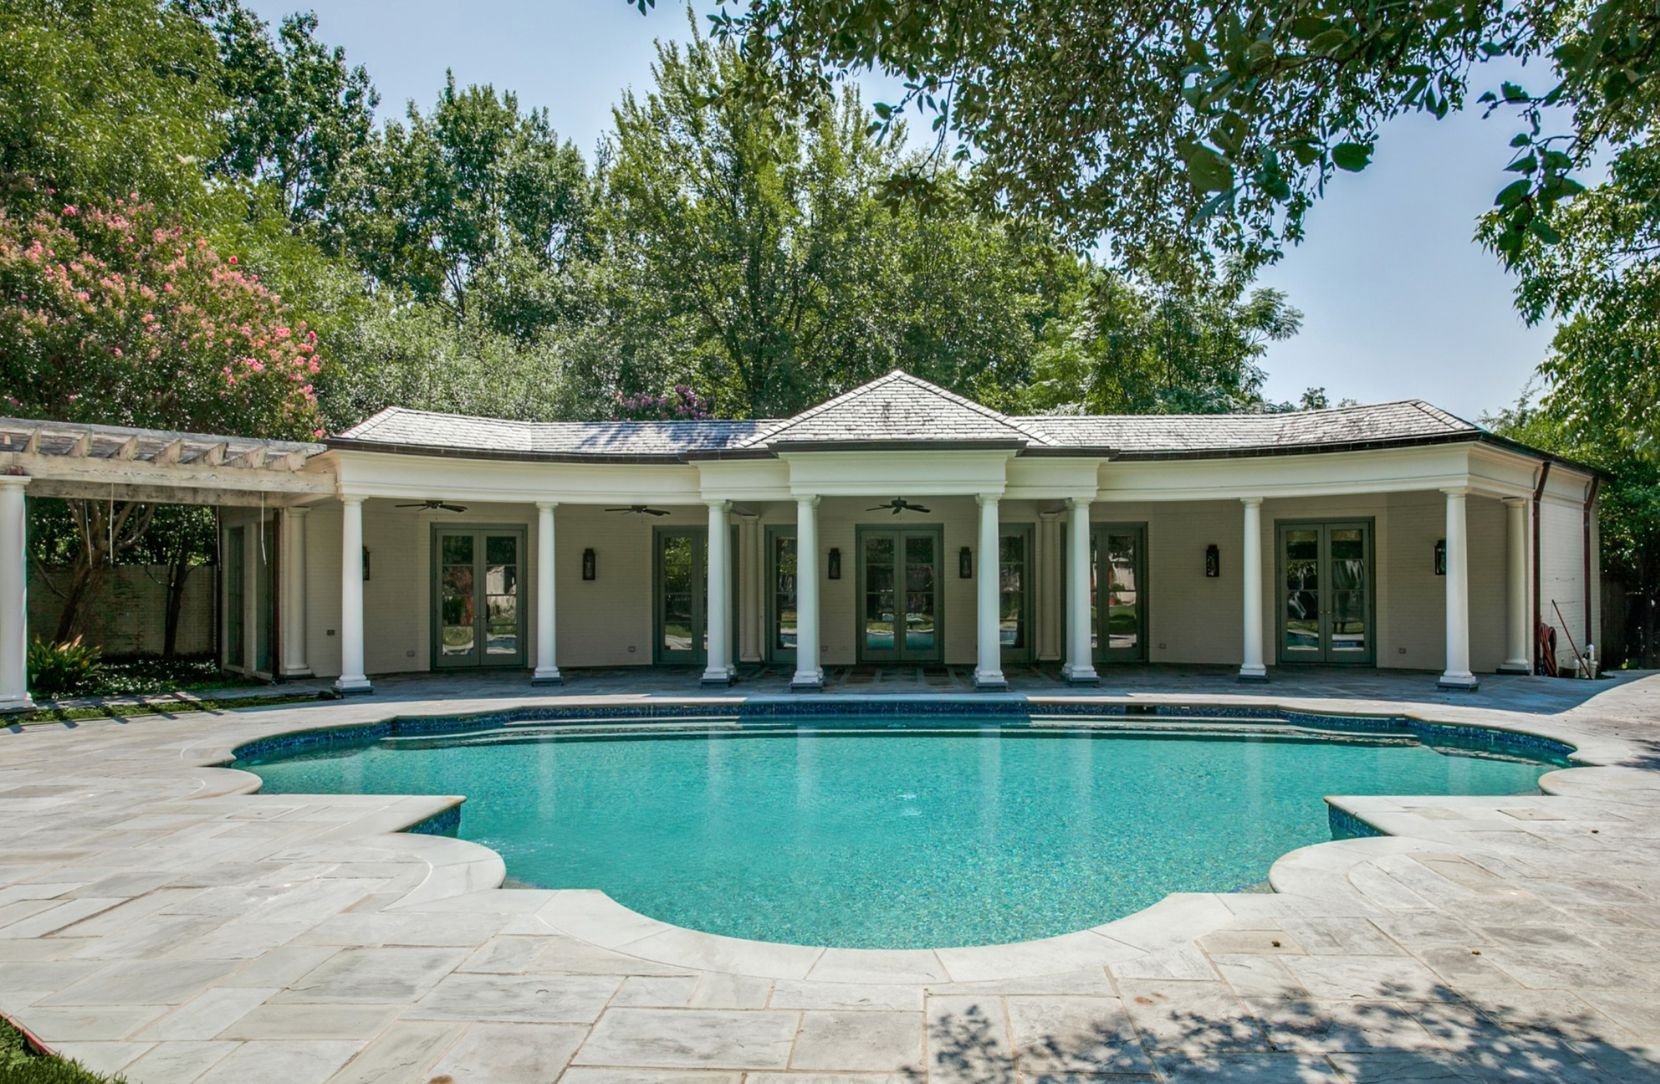 The Preston Hollow home is on more than 2.5 acres.